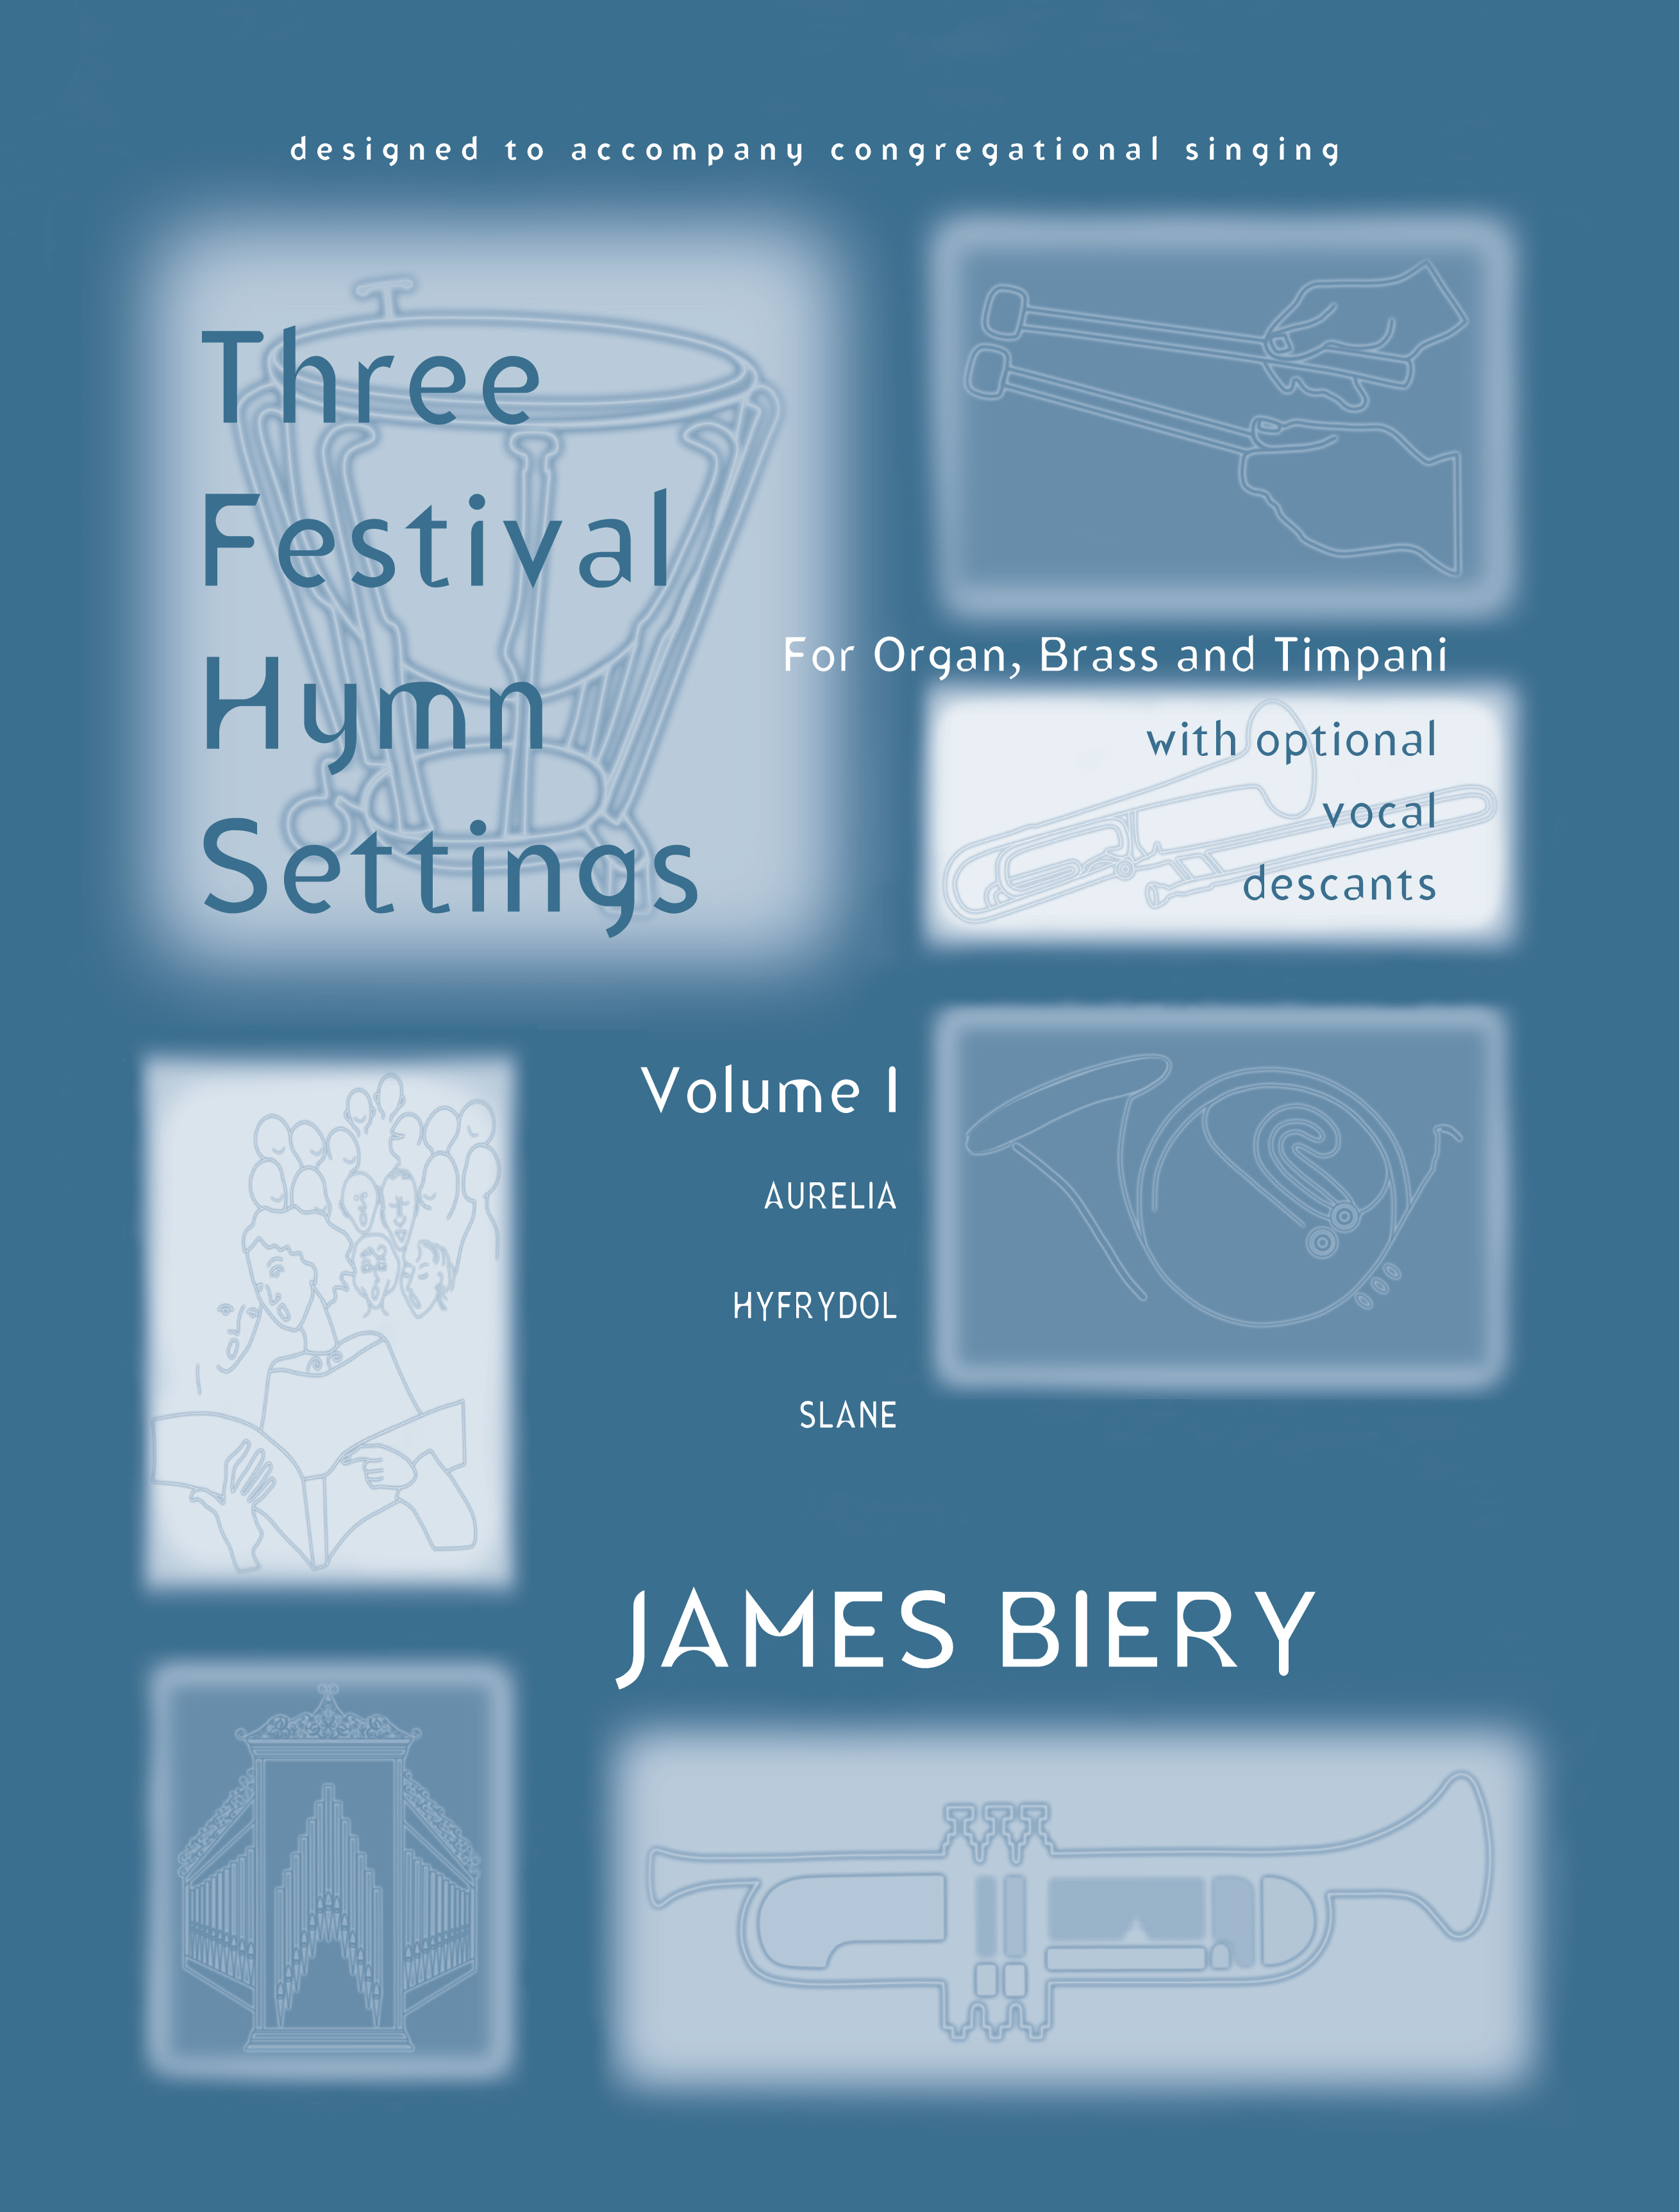 Three Festival Hymn Settings for Organ, Brass, and Congregation